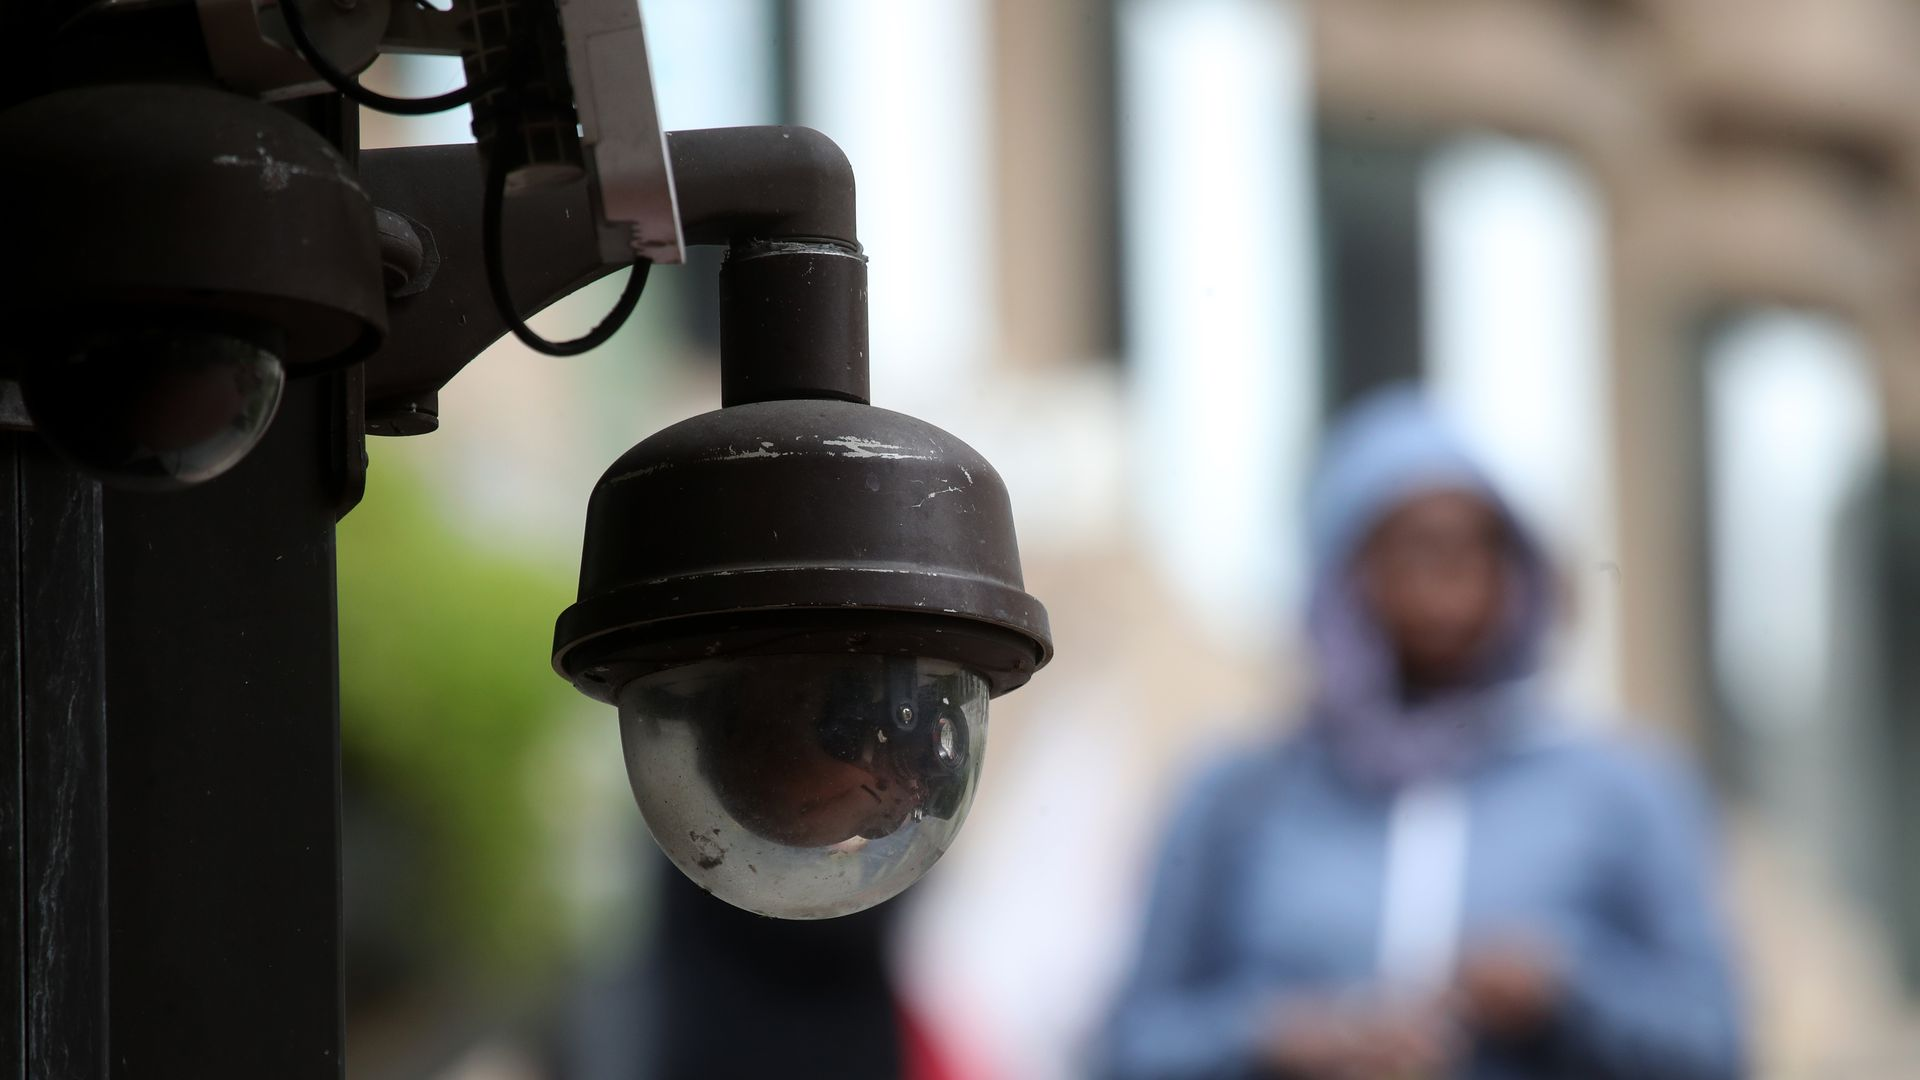 San Francisco becomes first major U.S. city to ban facial recognition technology